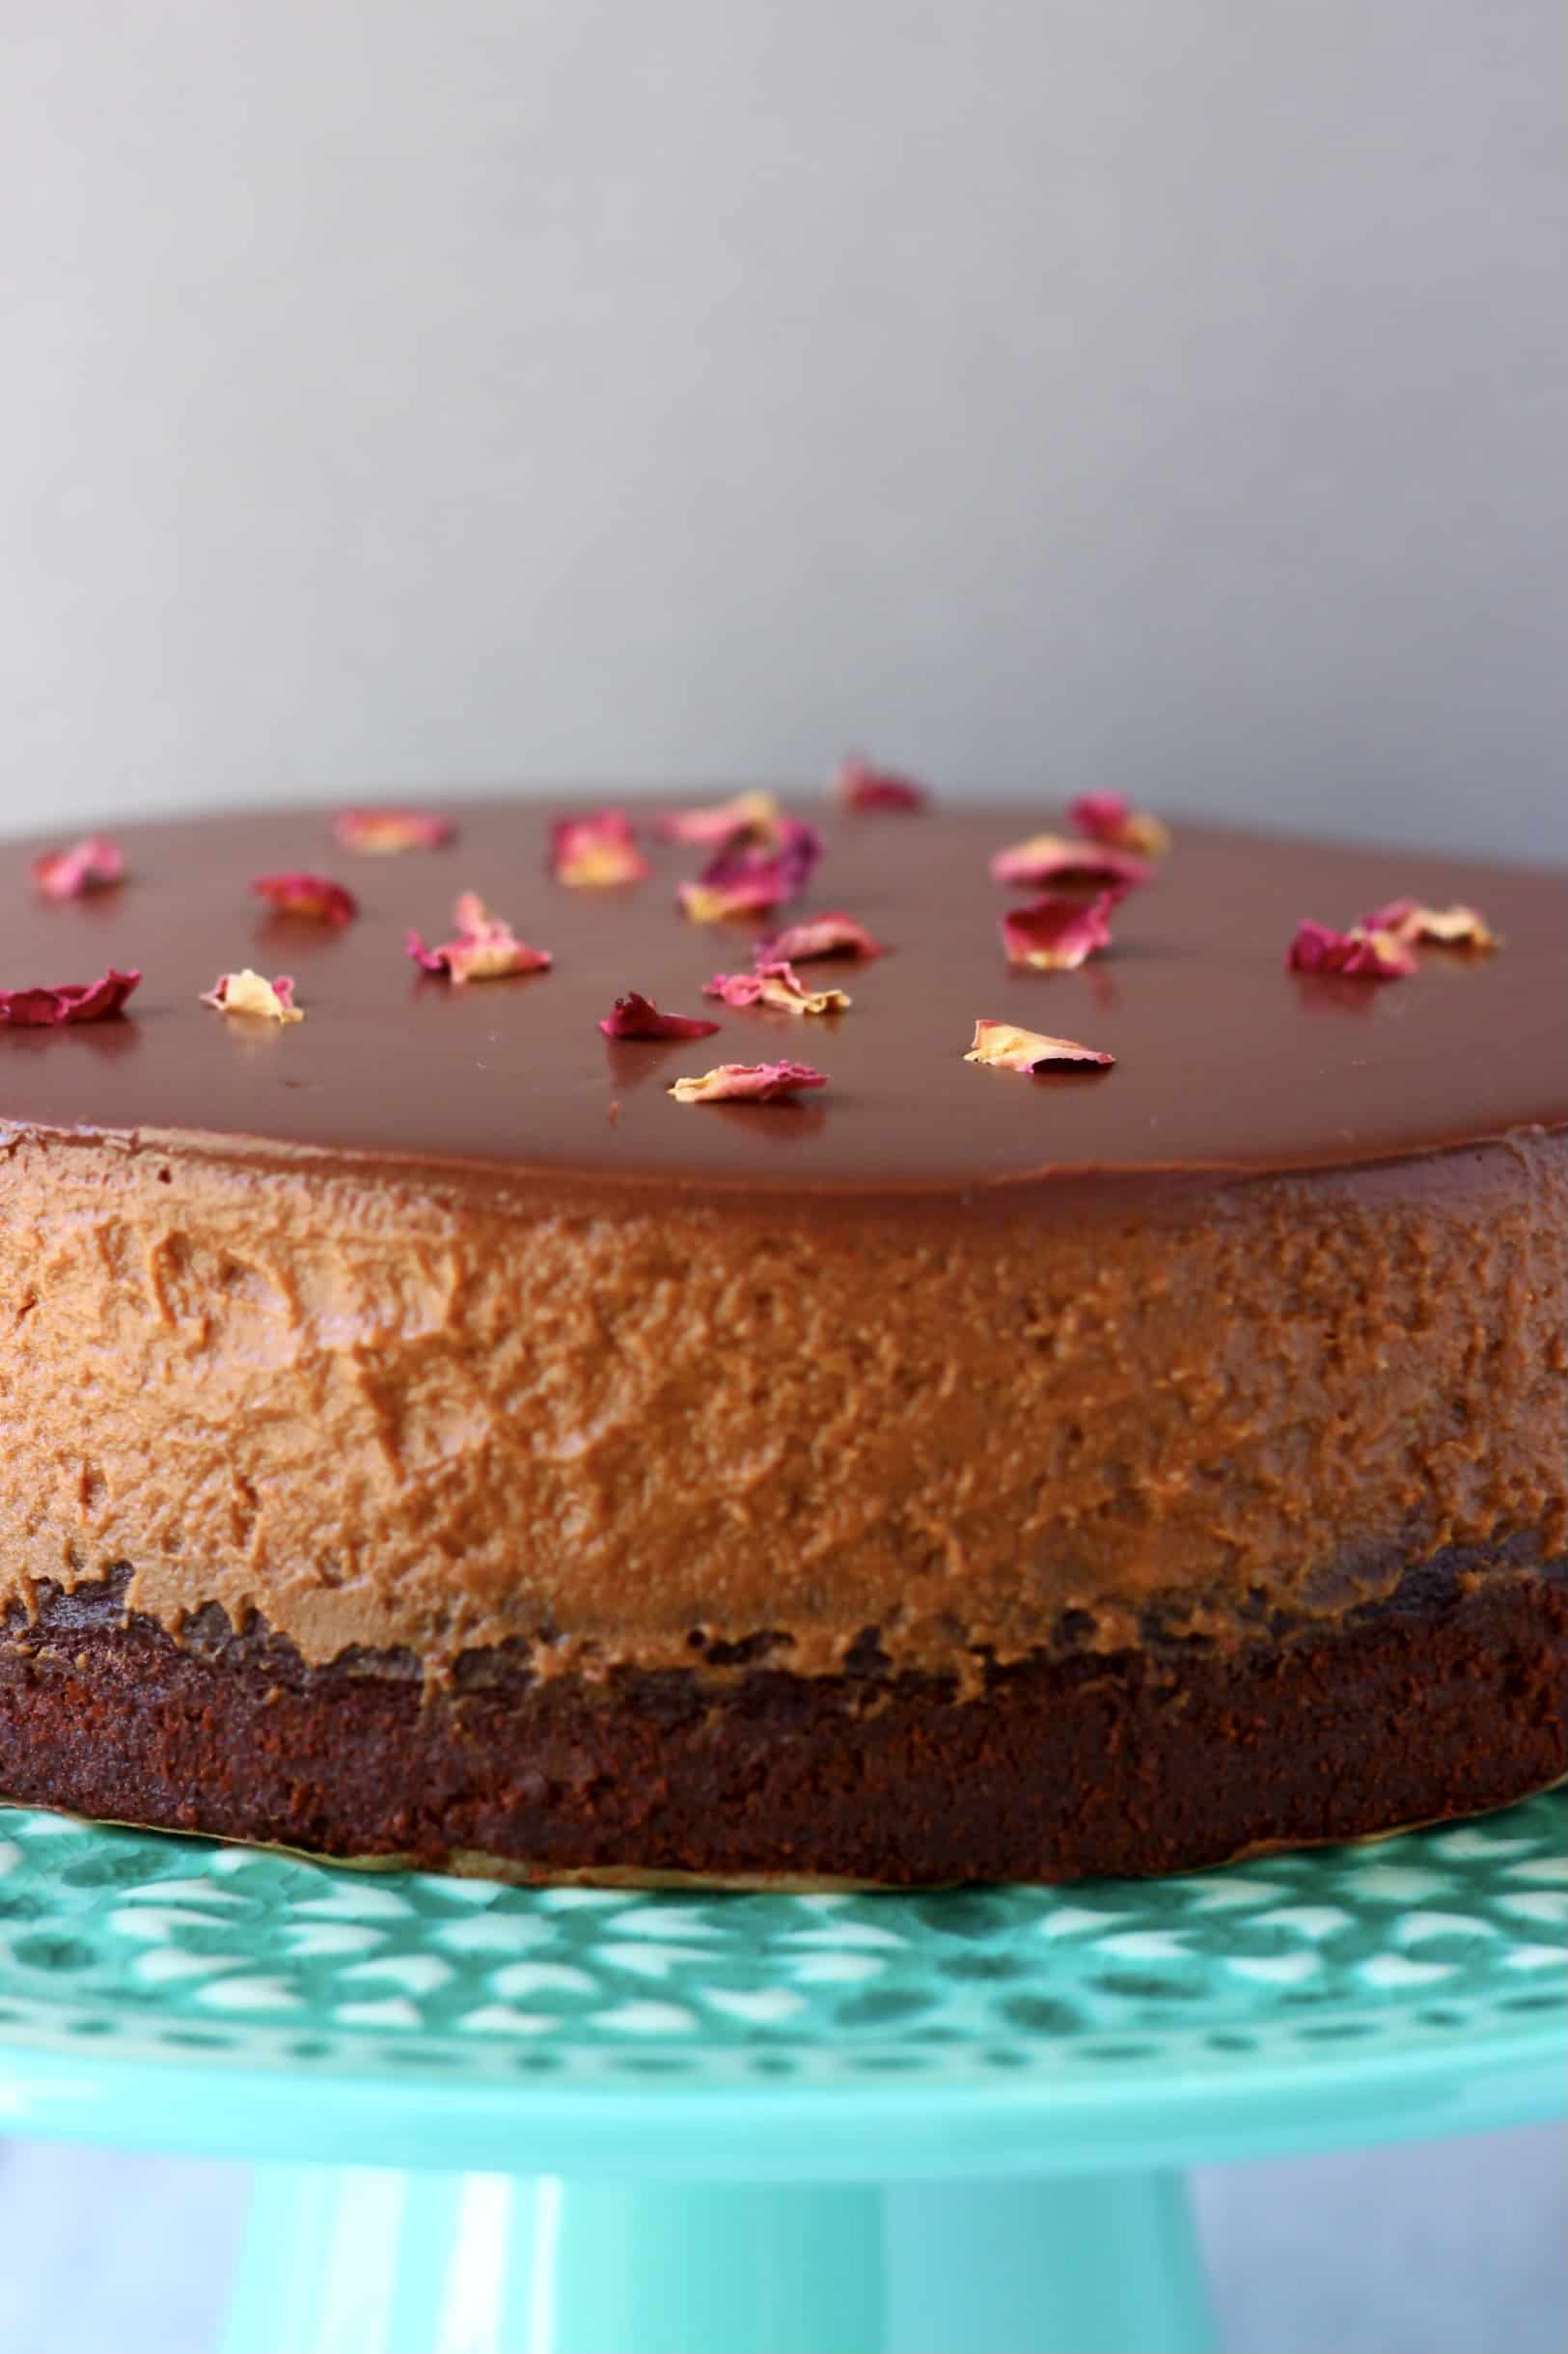 A gluten-free vegan chocolate mousse cake on a cake stand